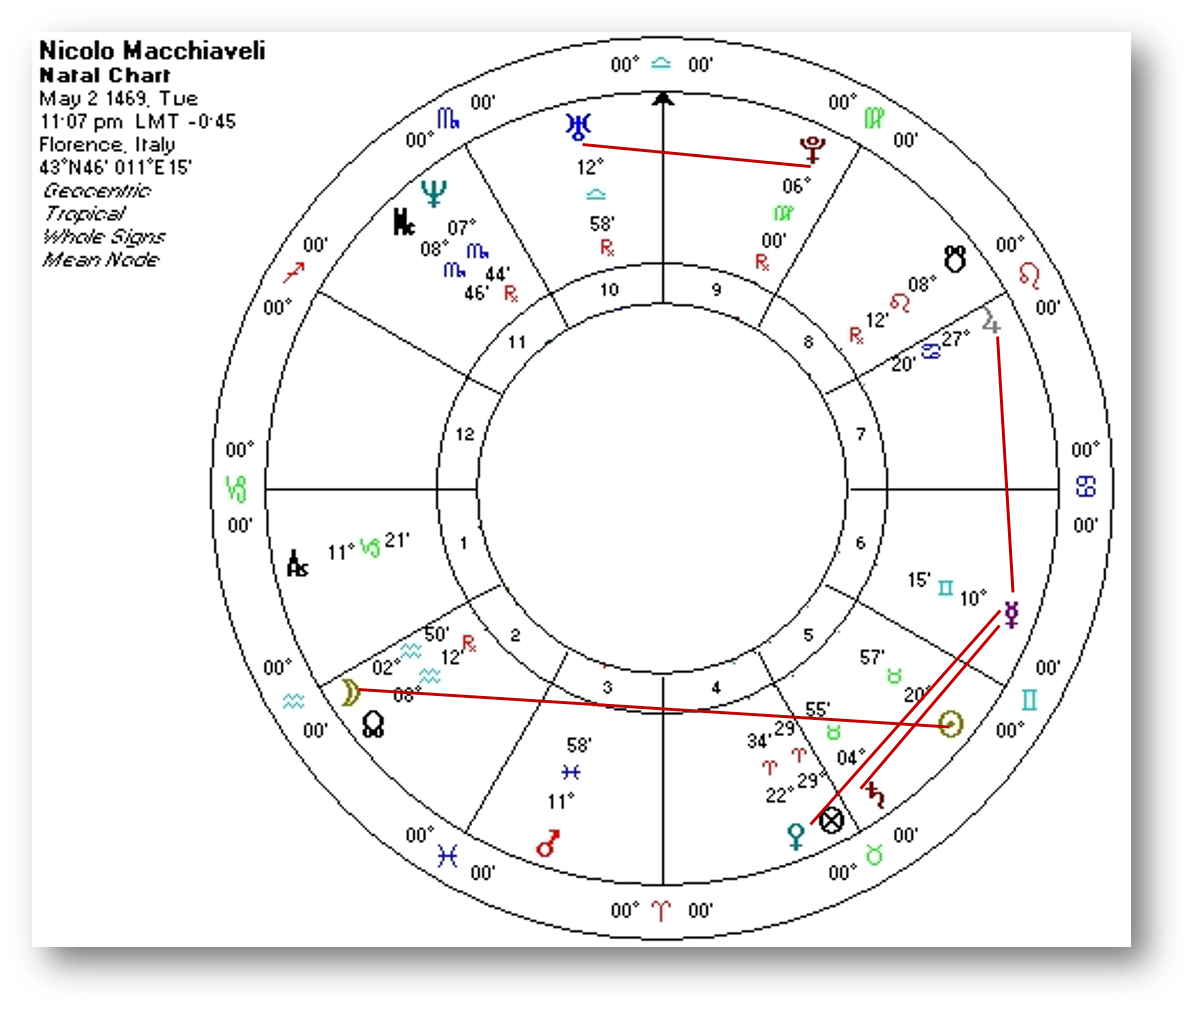 Machiavelli the malignancy of fortune and the modern age the niccolo machiavellis natal chart with the aspects drawn in nvjuhfo Images